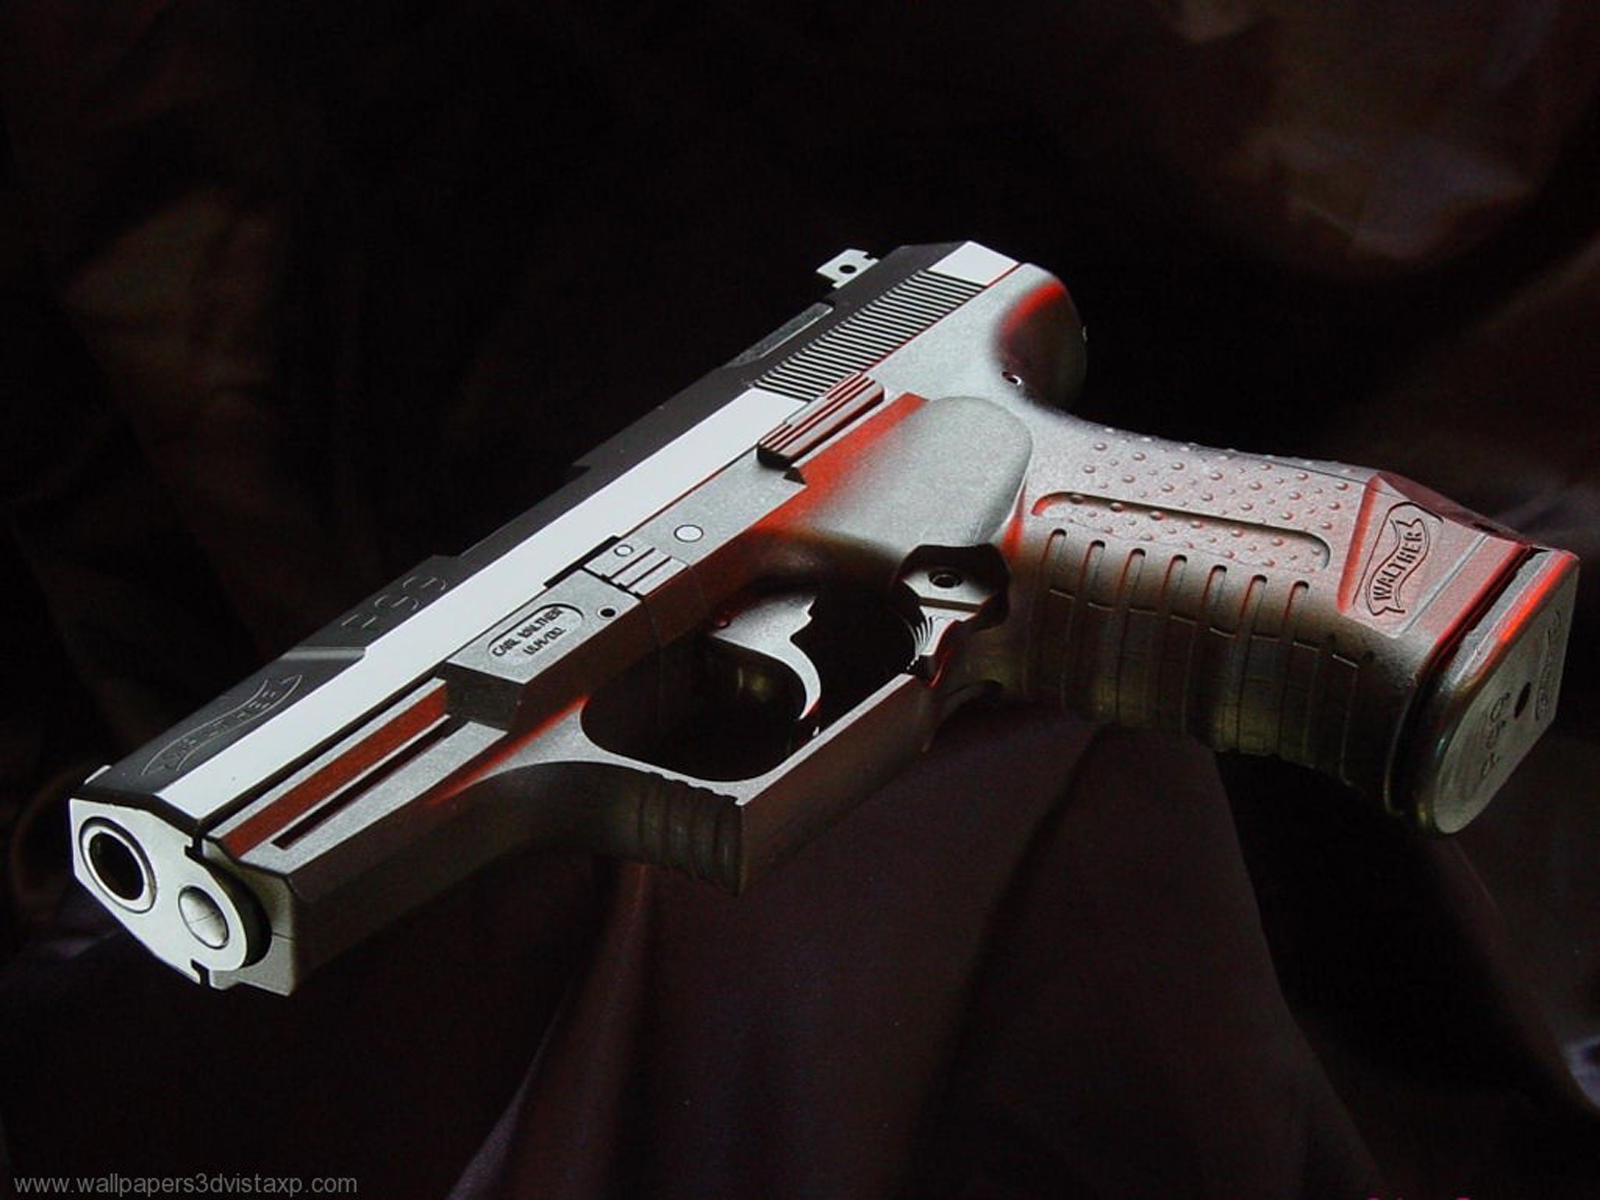 hd guns wallpaper download - photo #18